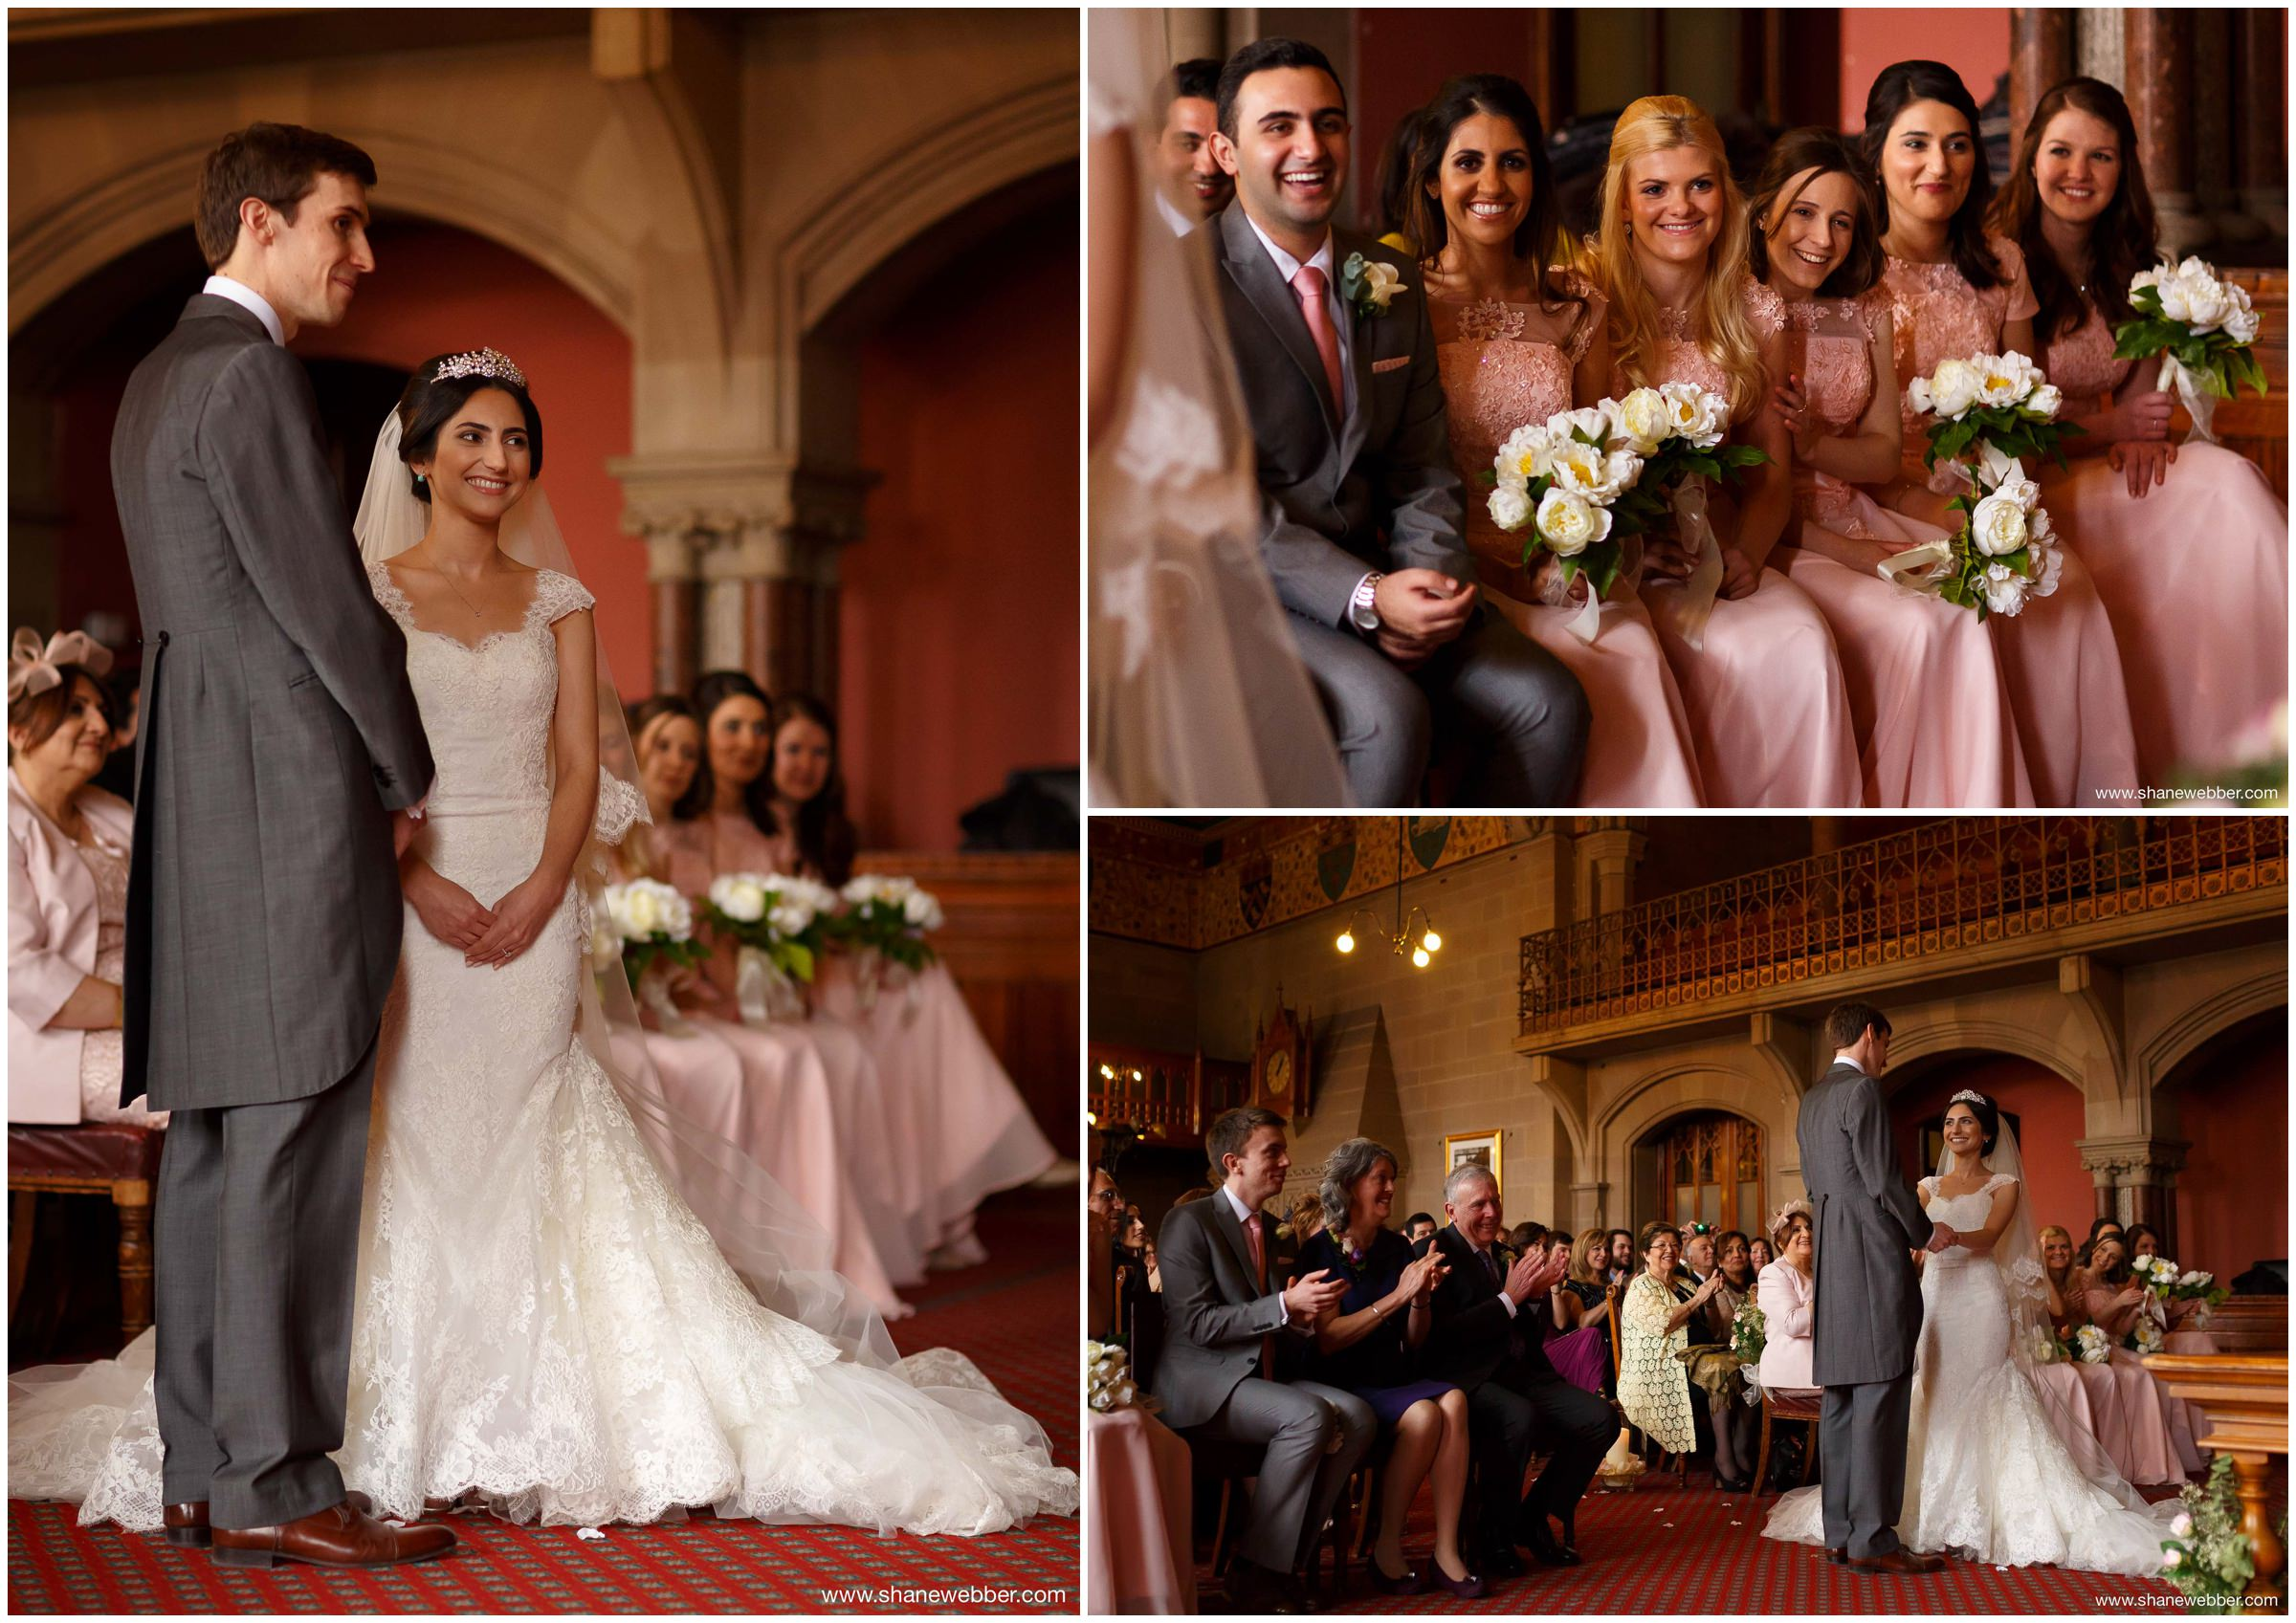 Manchester Town Hall Wedding Ceremony Photos